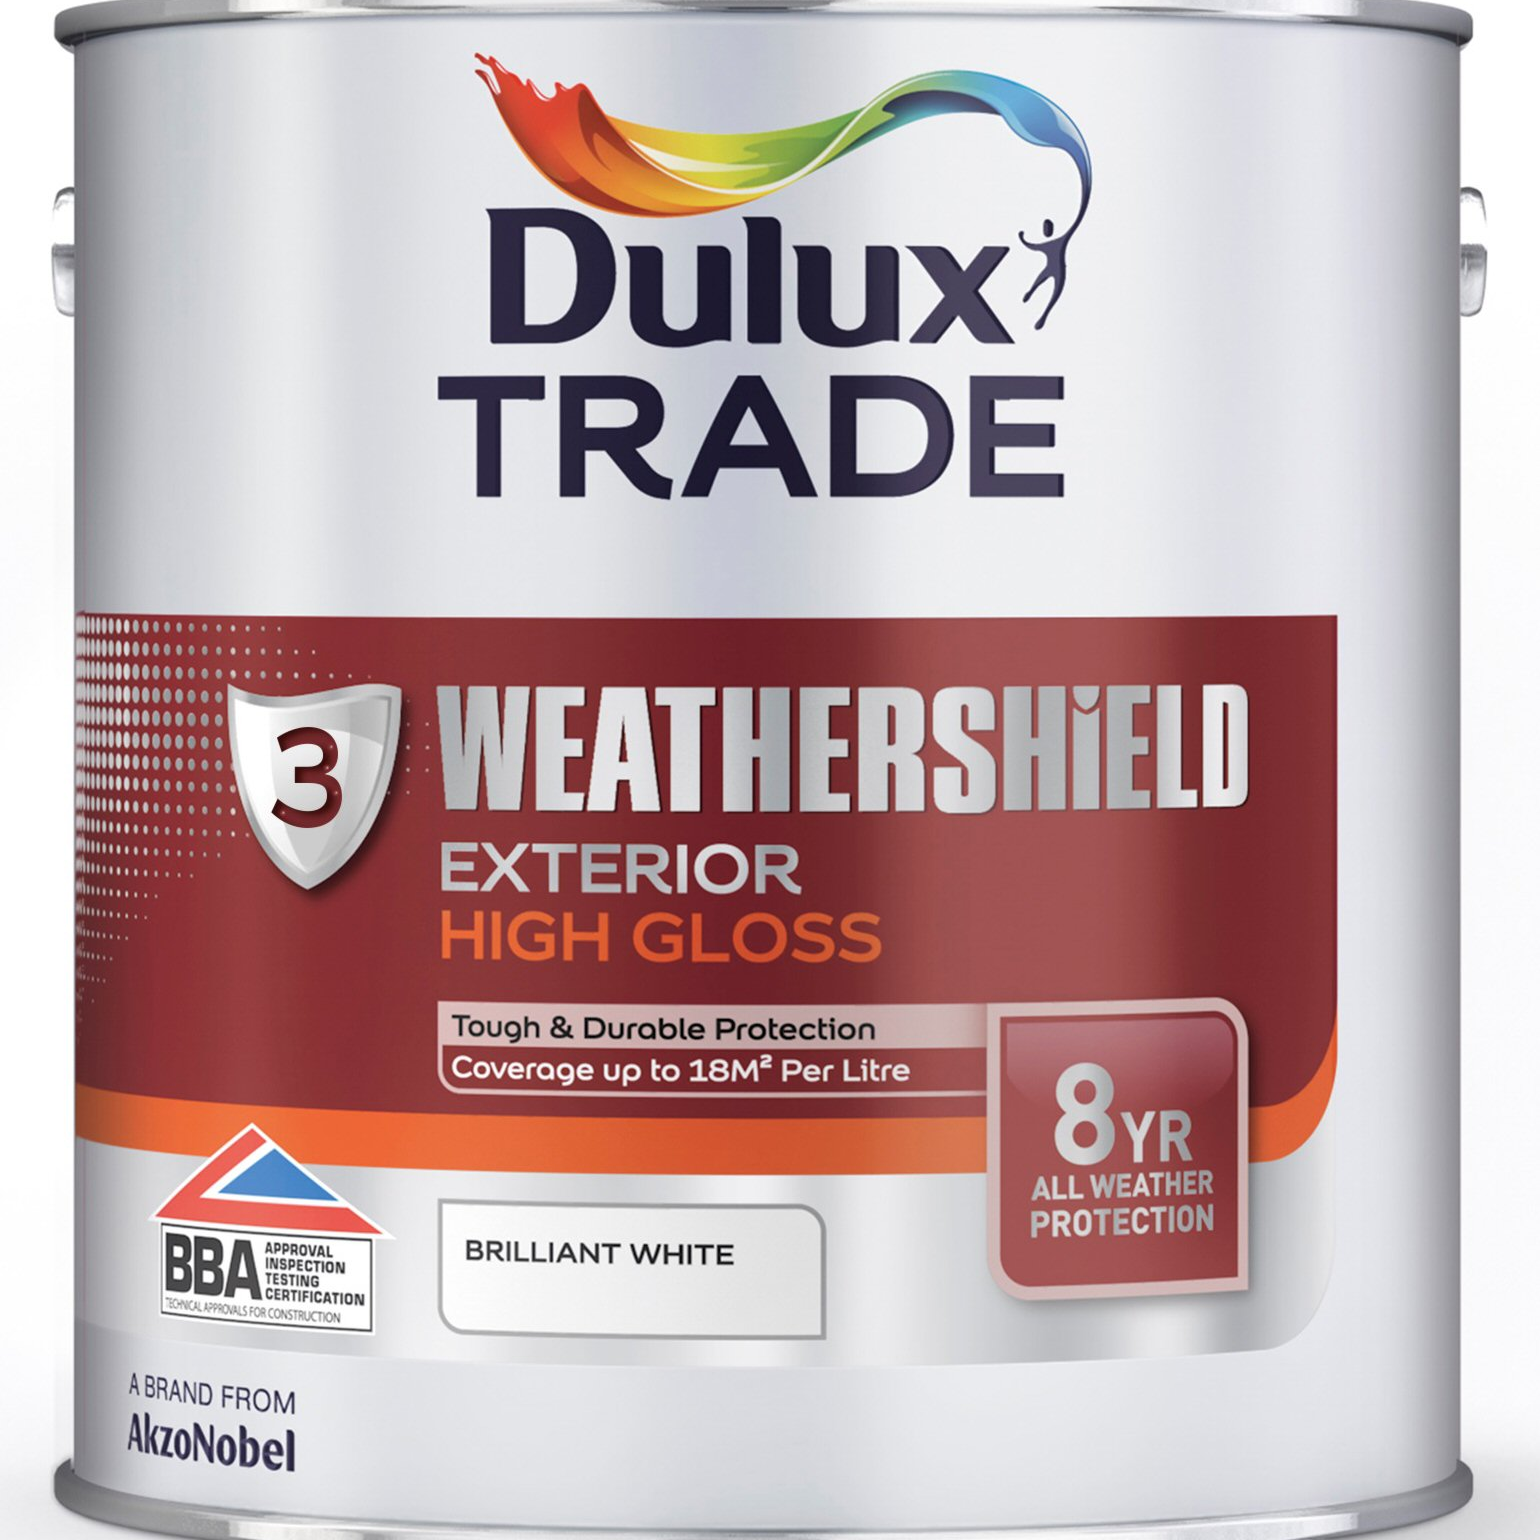 Dulux Trade Weathershield Exterior High Gloss Black or White